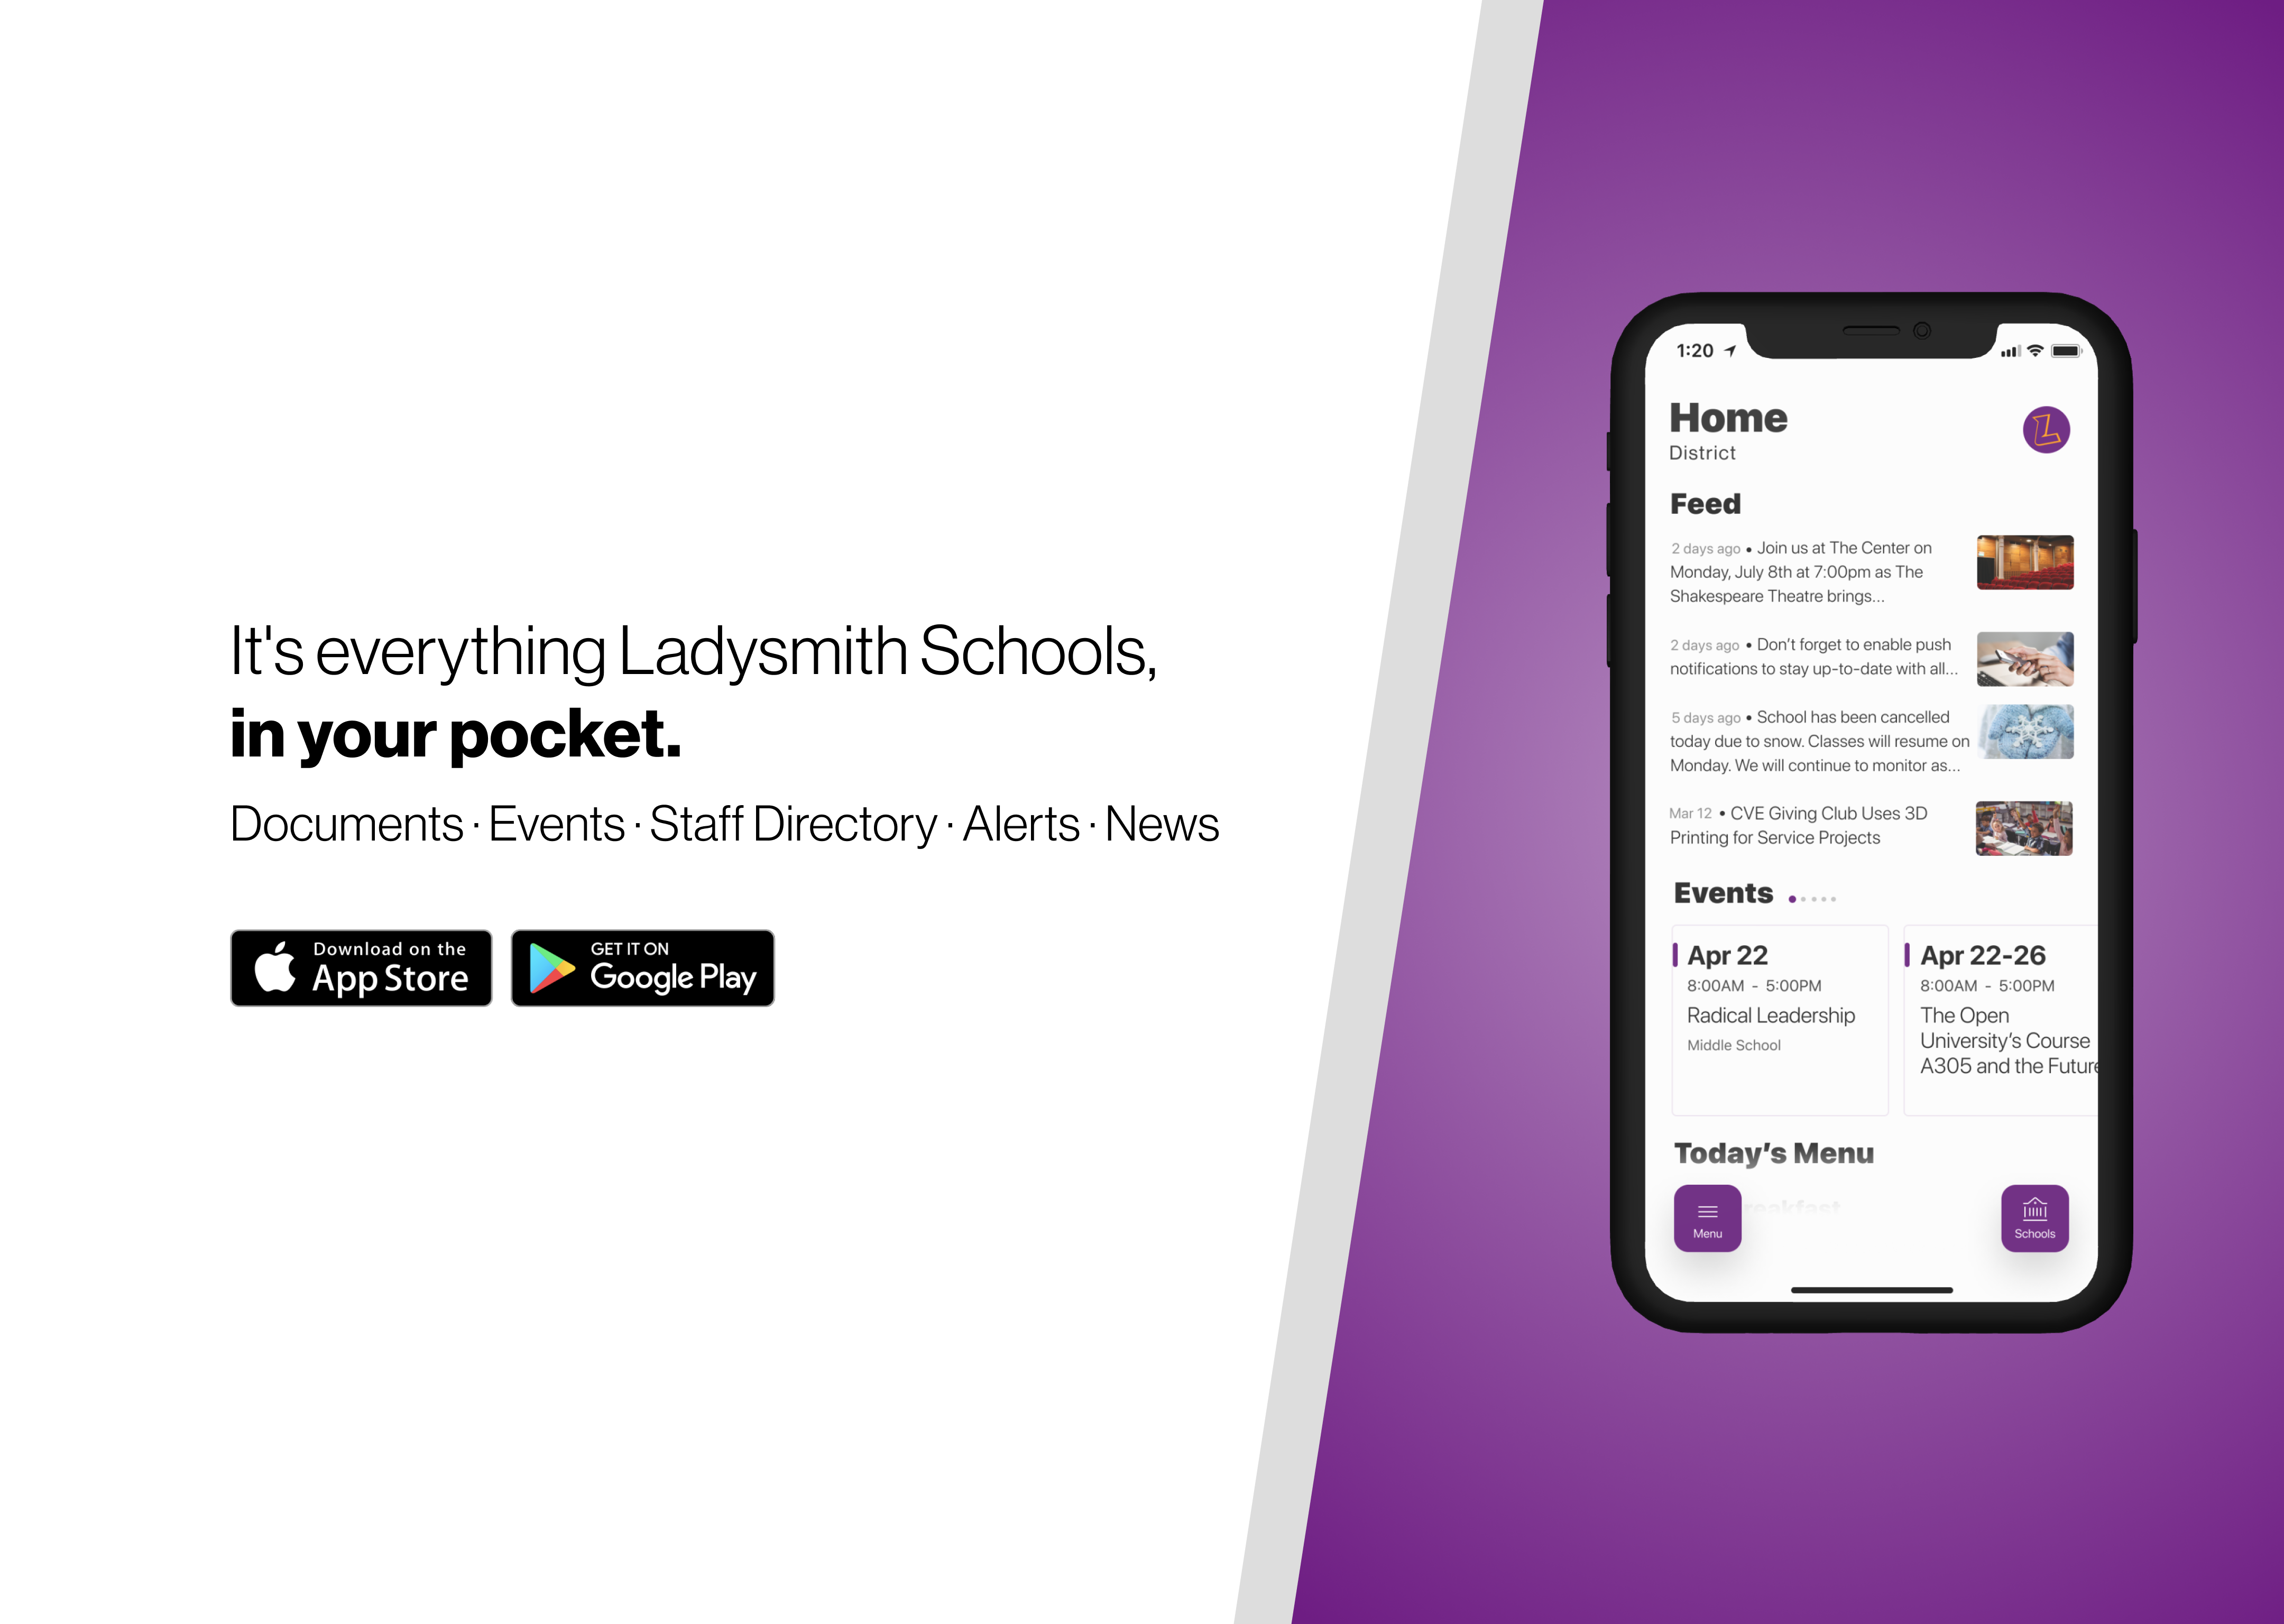 download the school mobile app in both Googly Play and the Apple store